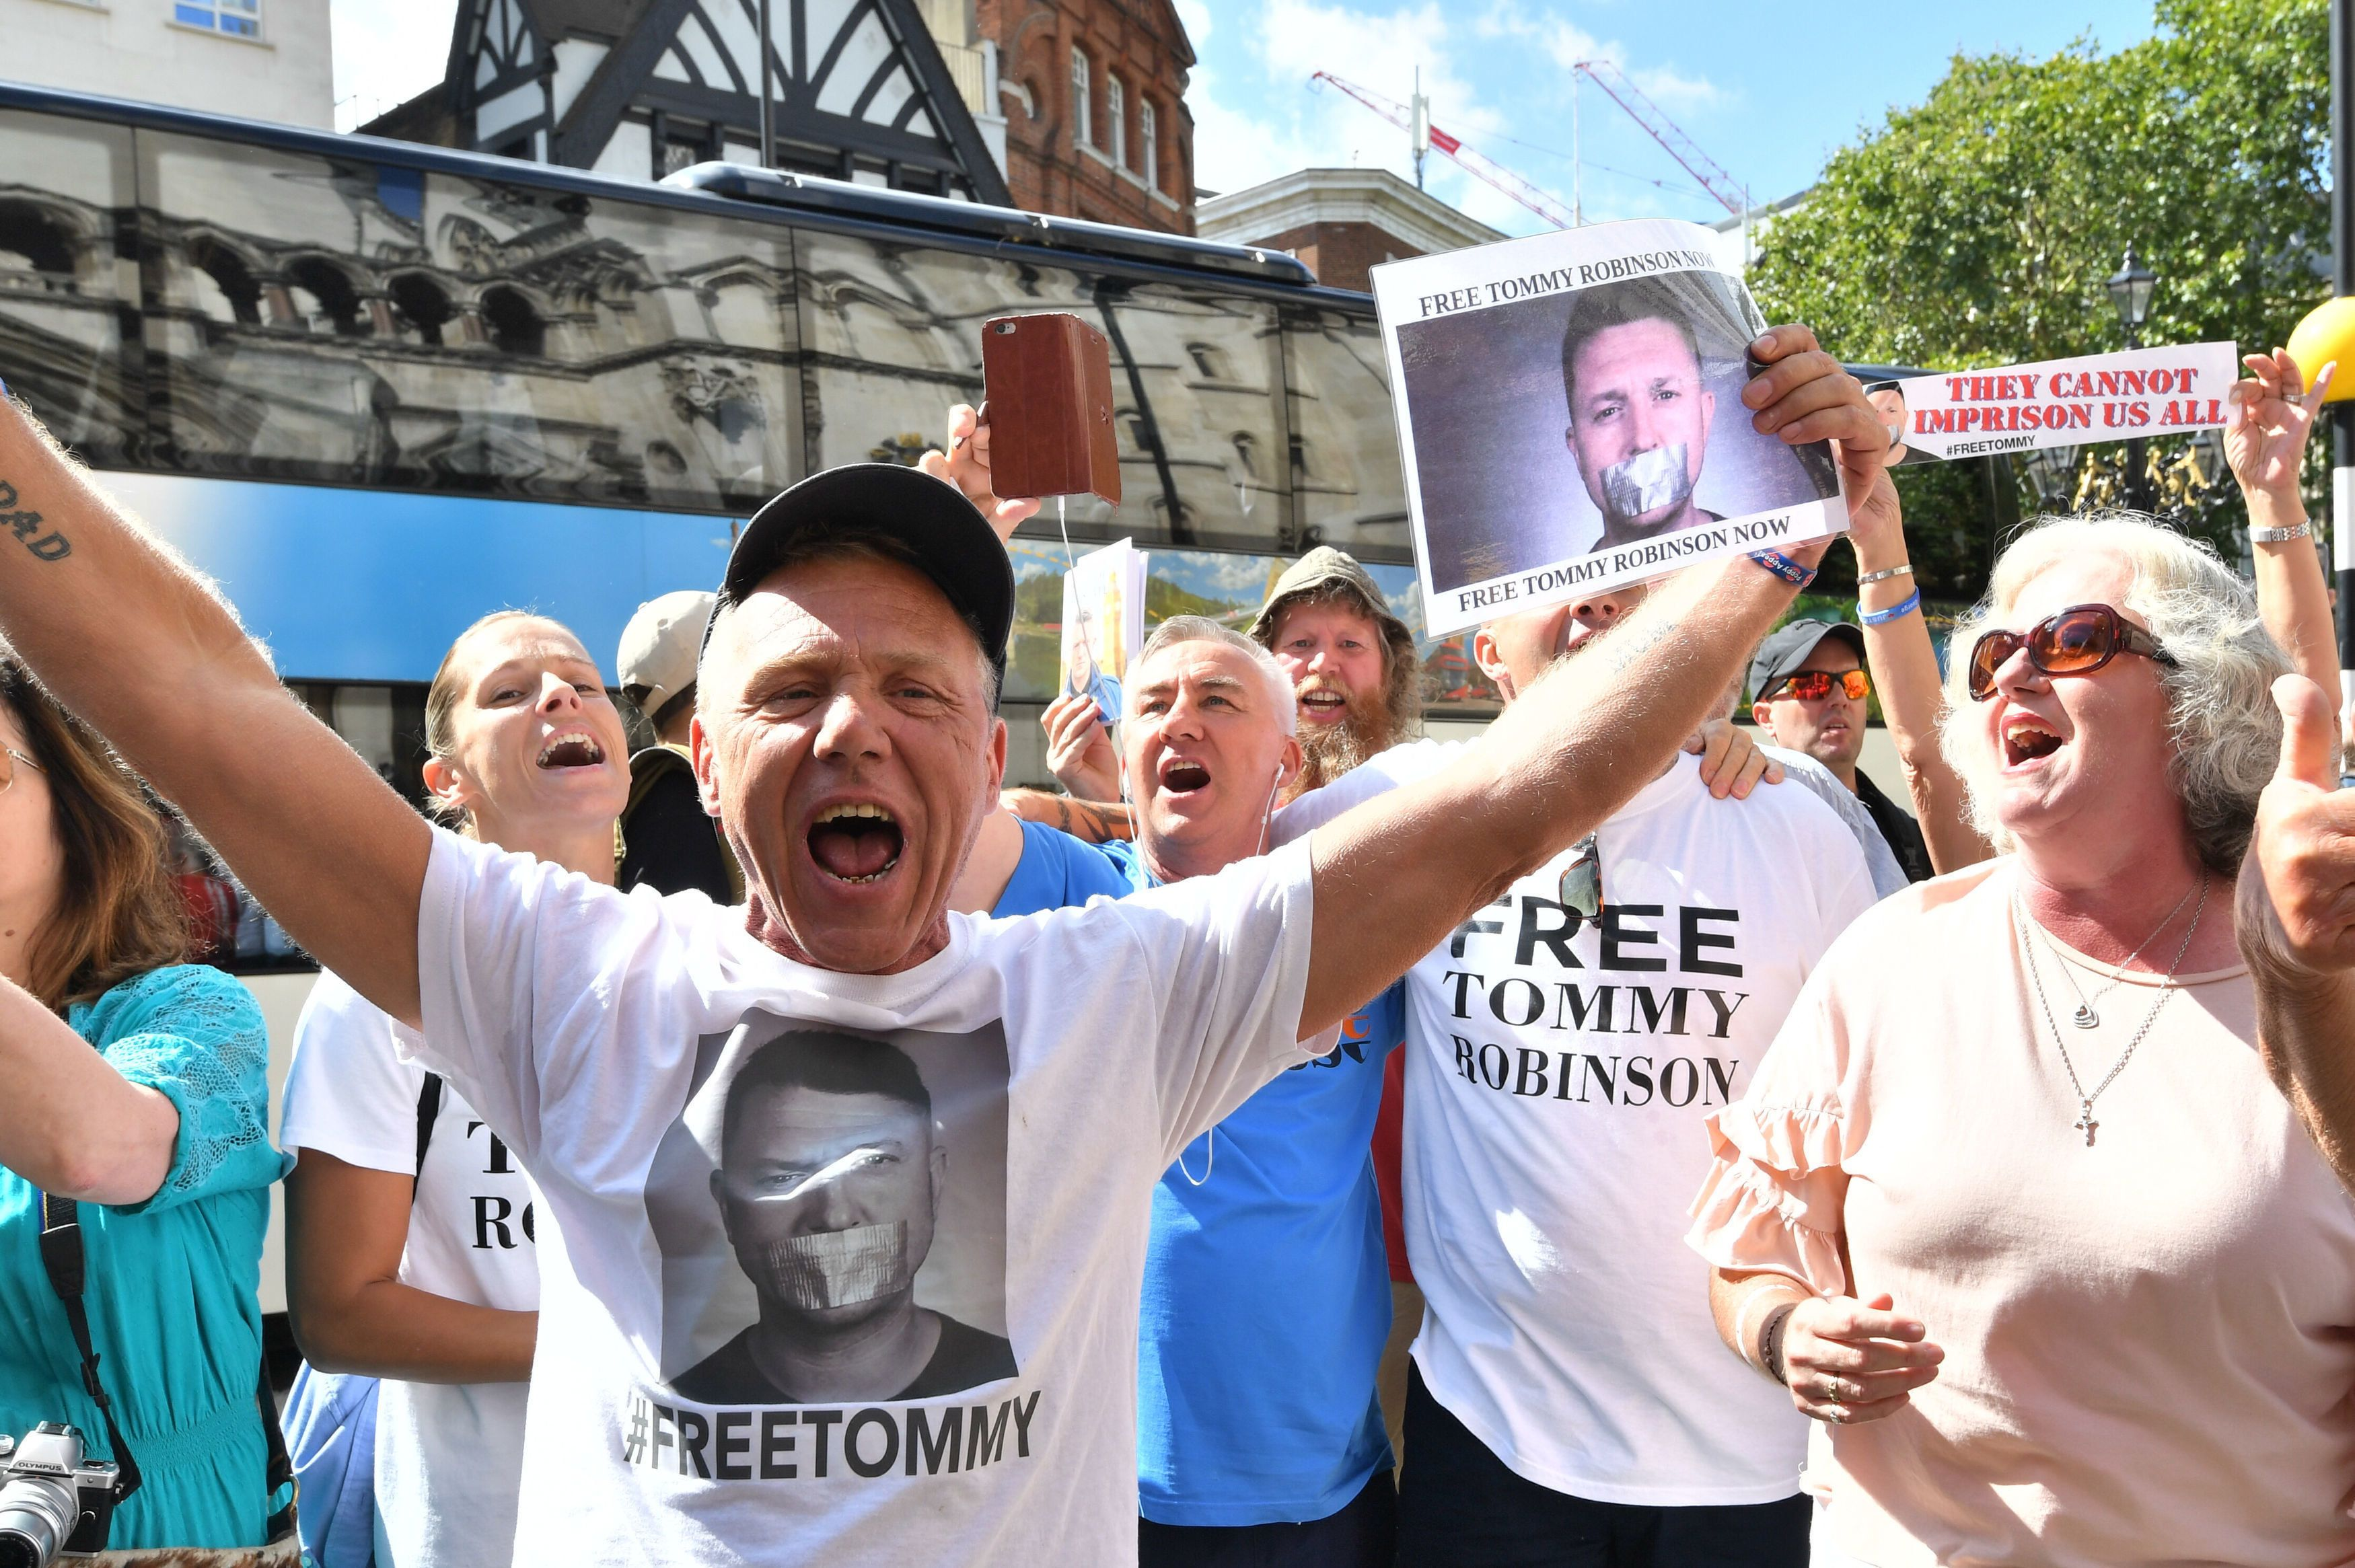 Tommy Robinson Wins Appeal Against His Contempt Of Court